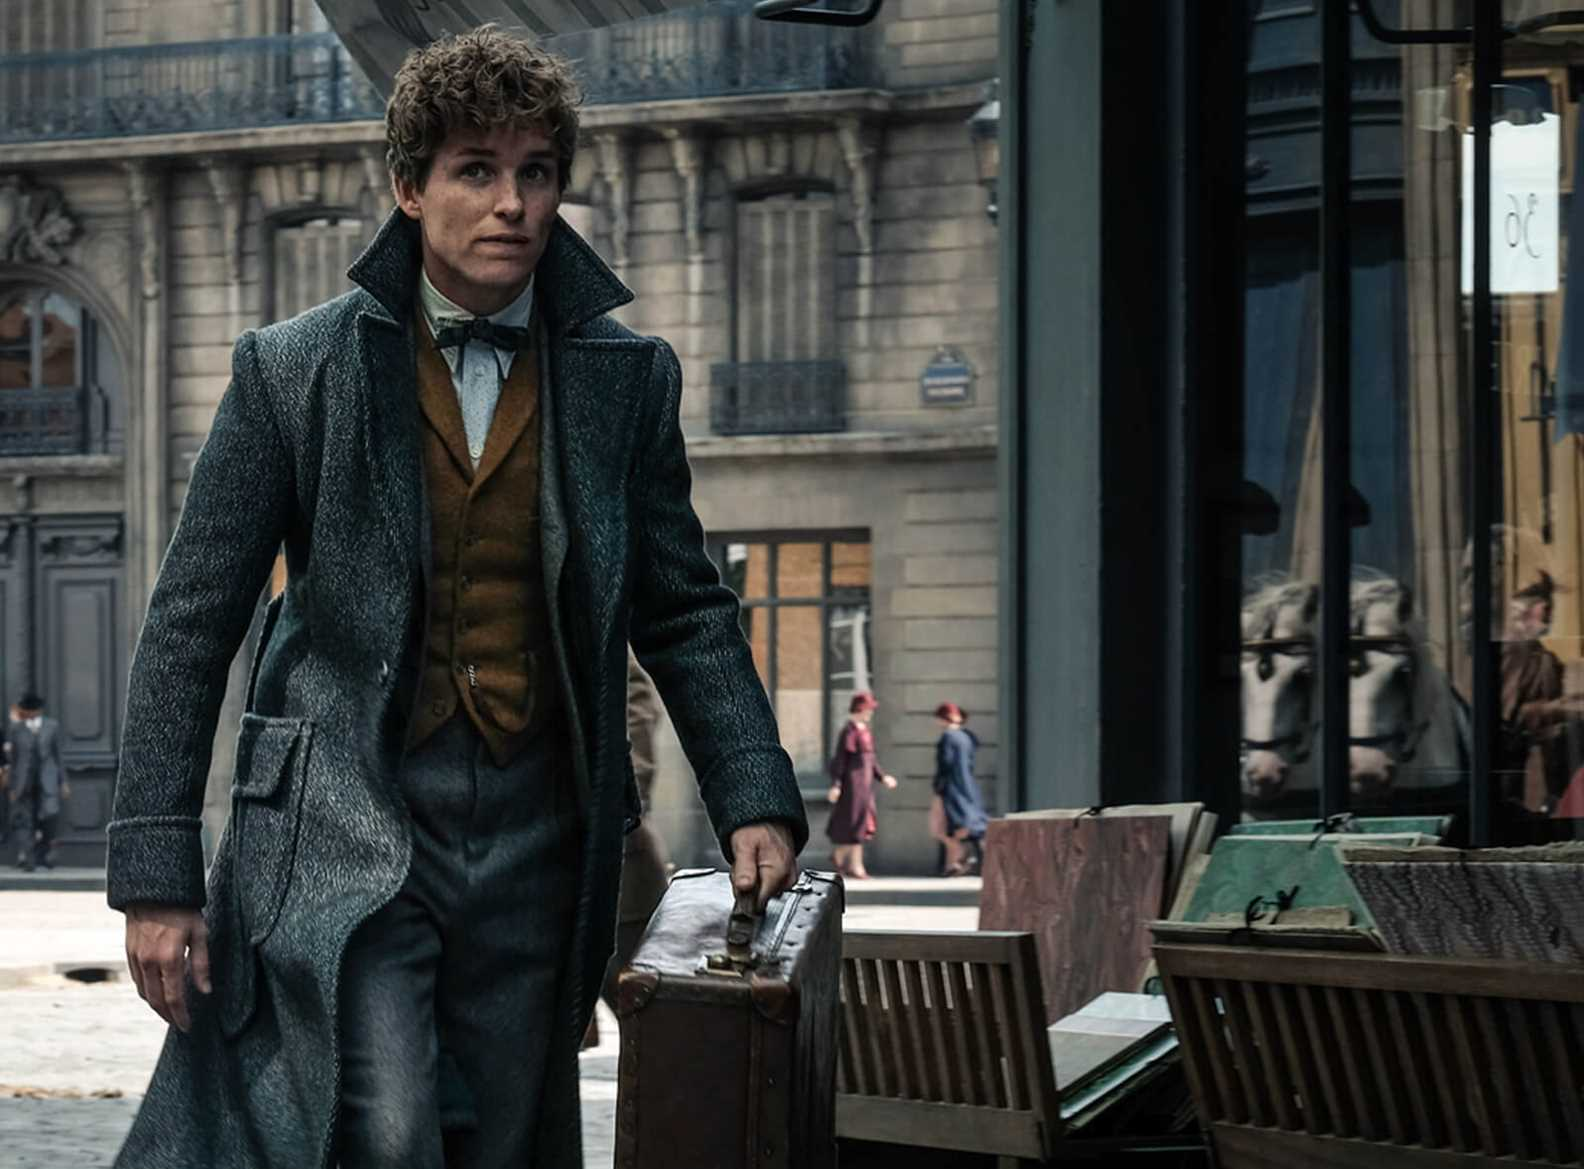 Recenzie Film: Fantastic Beasts 2 – The Crimes of Grindelwald